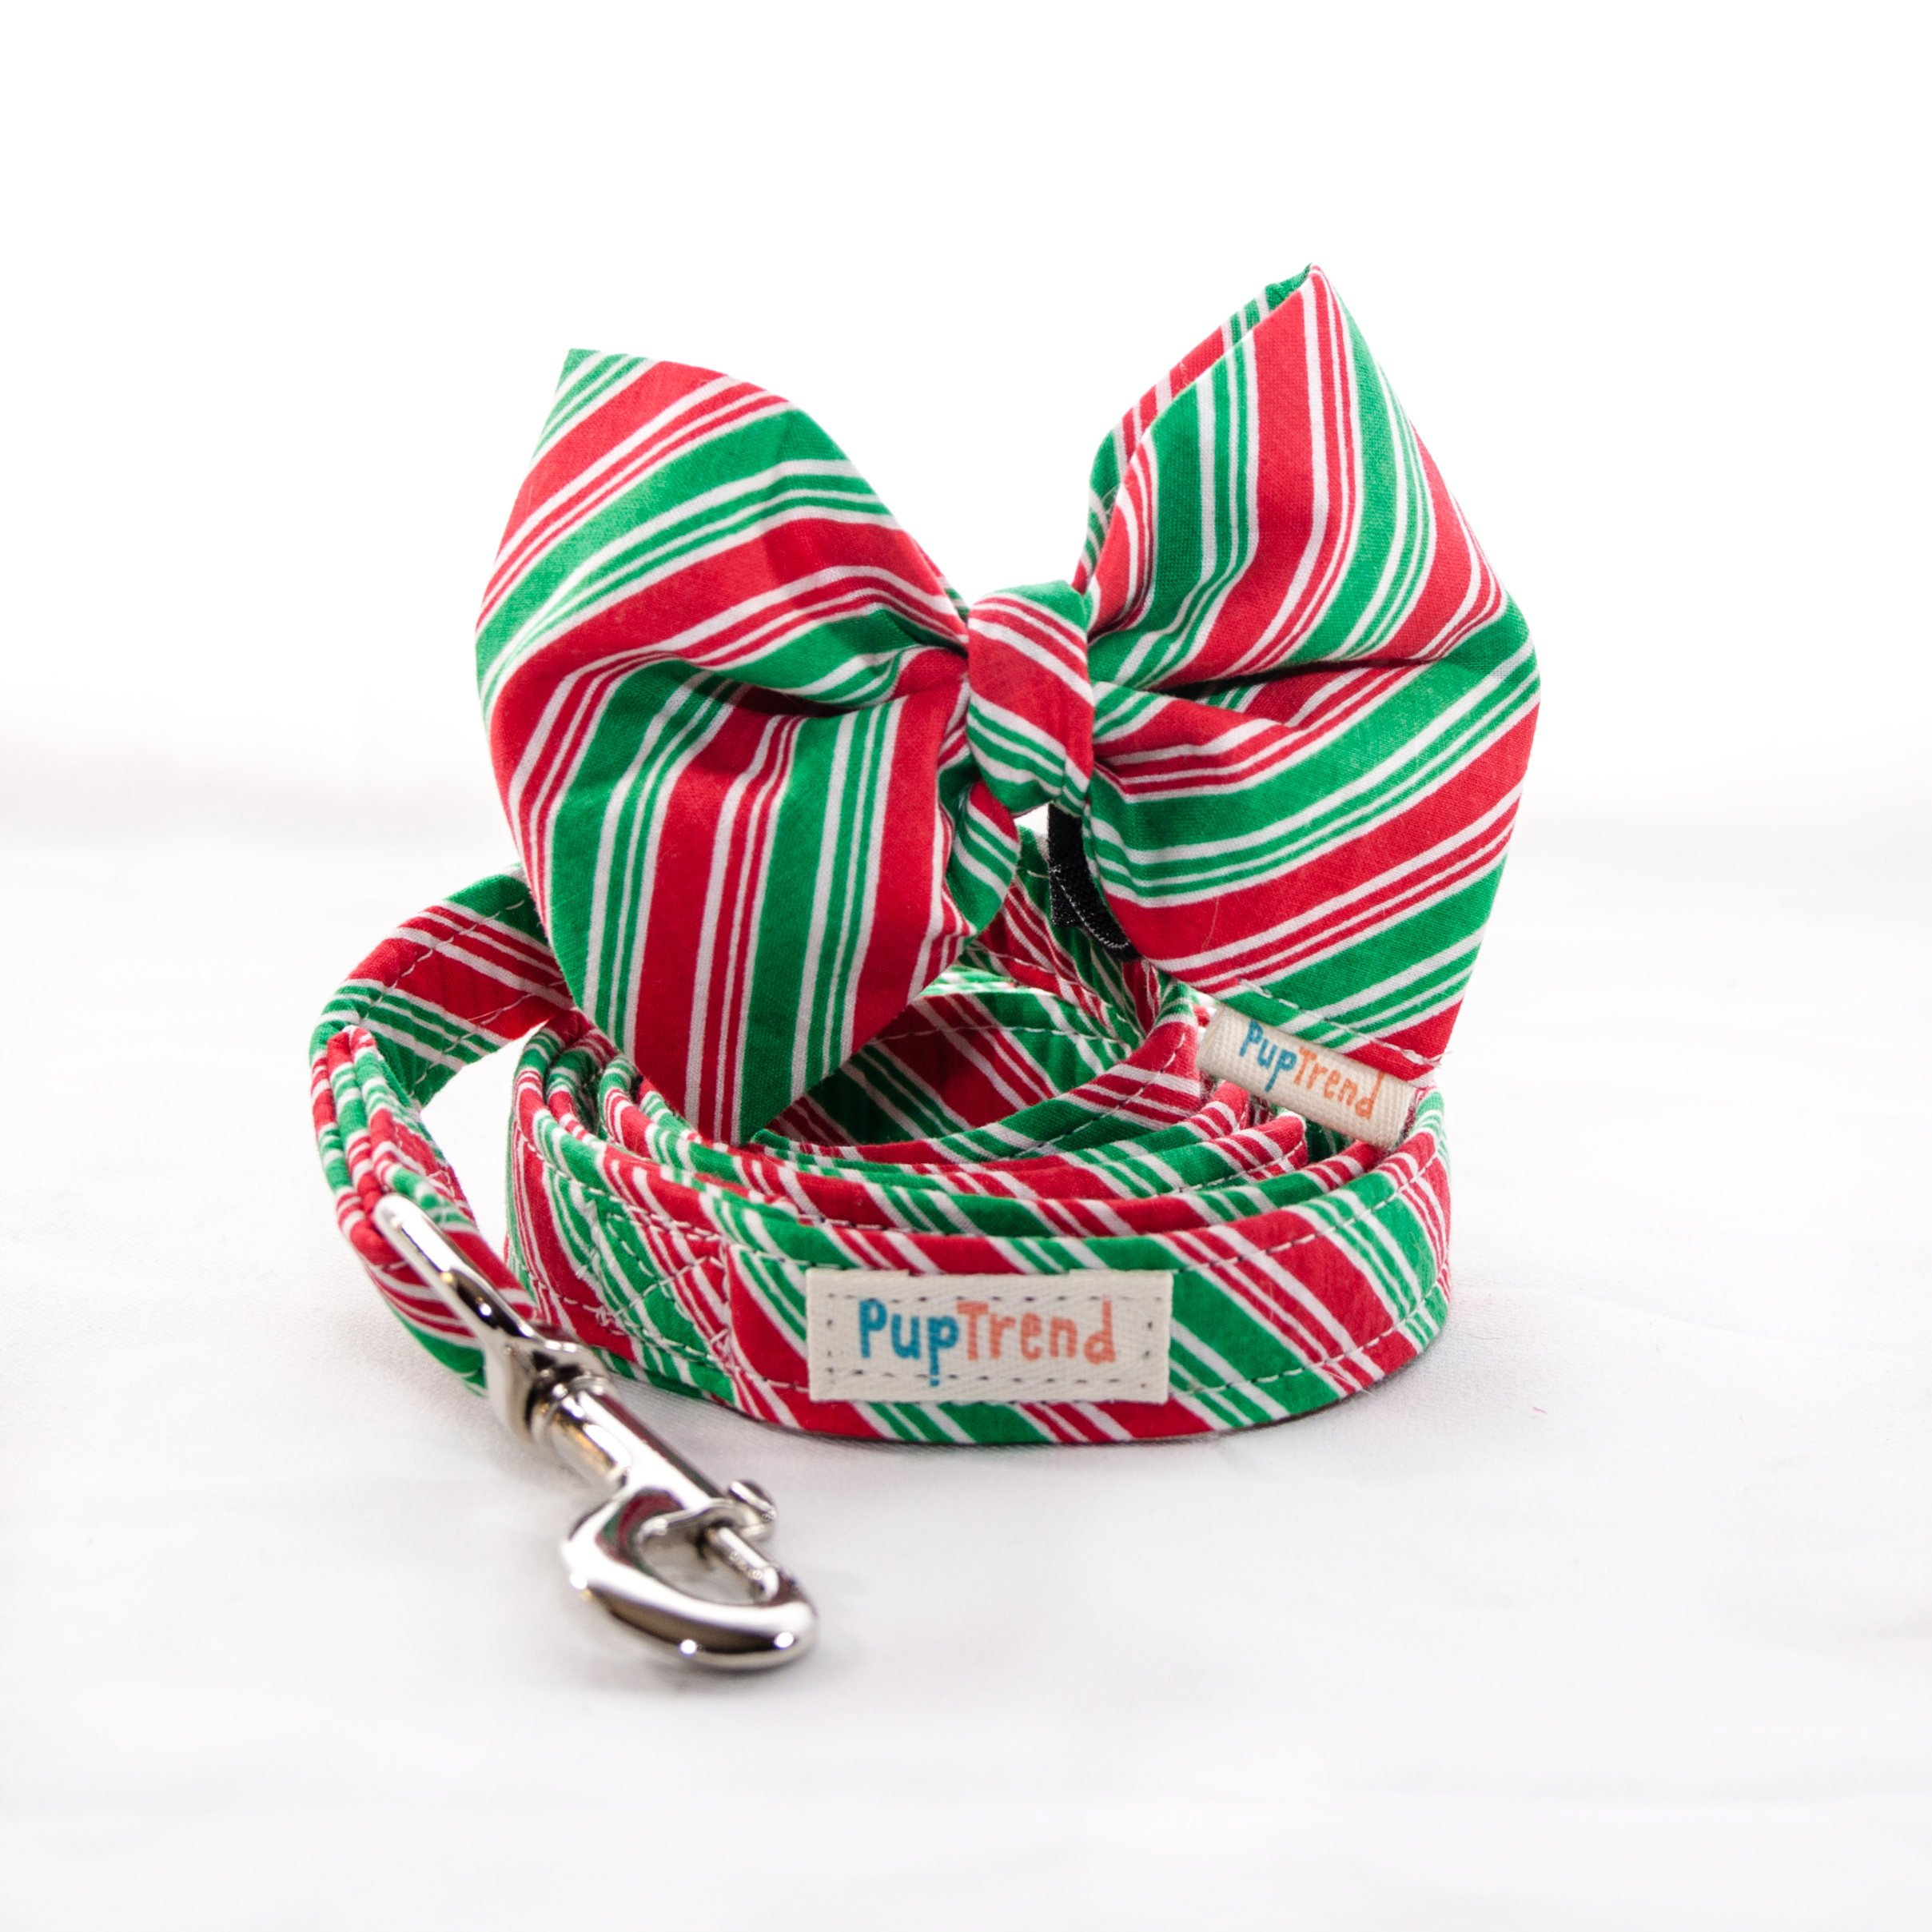 Pup-Trend-Christmas-Dog-Collar.jpg